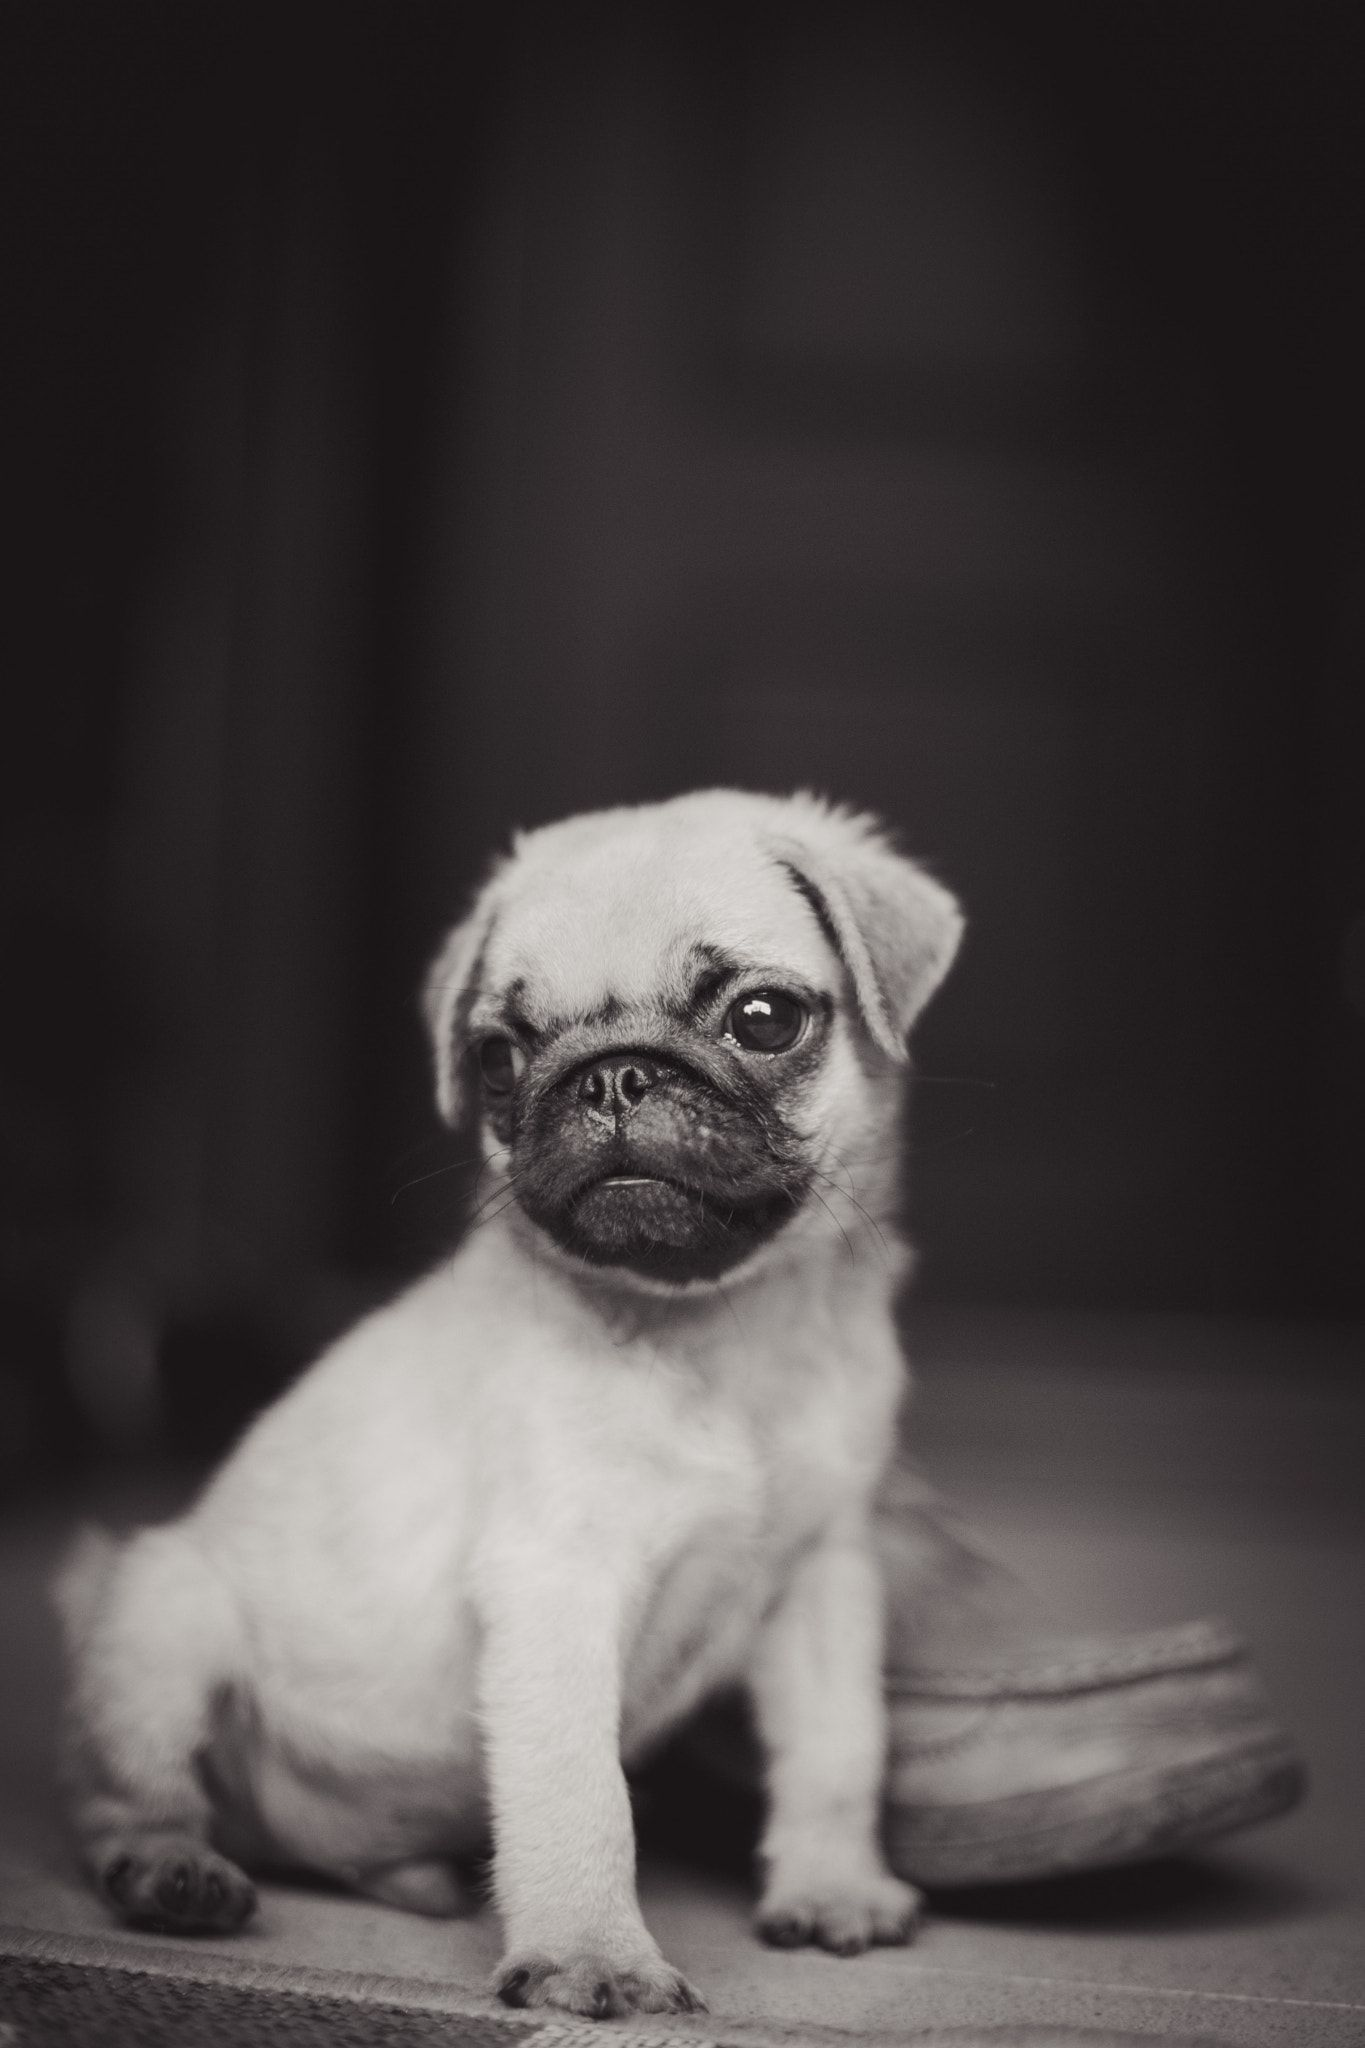 American Pug Puppy That Look When Your Crush Walks Past You By